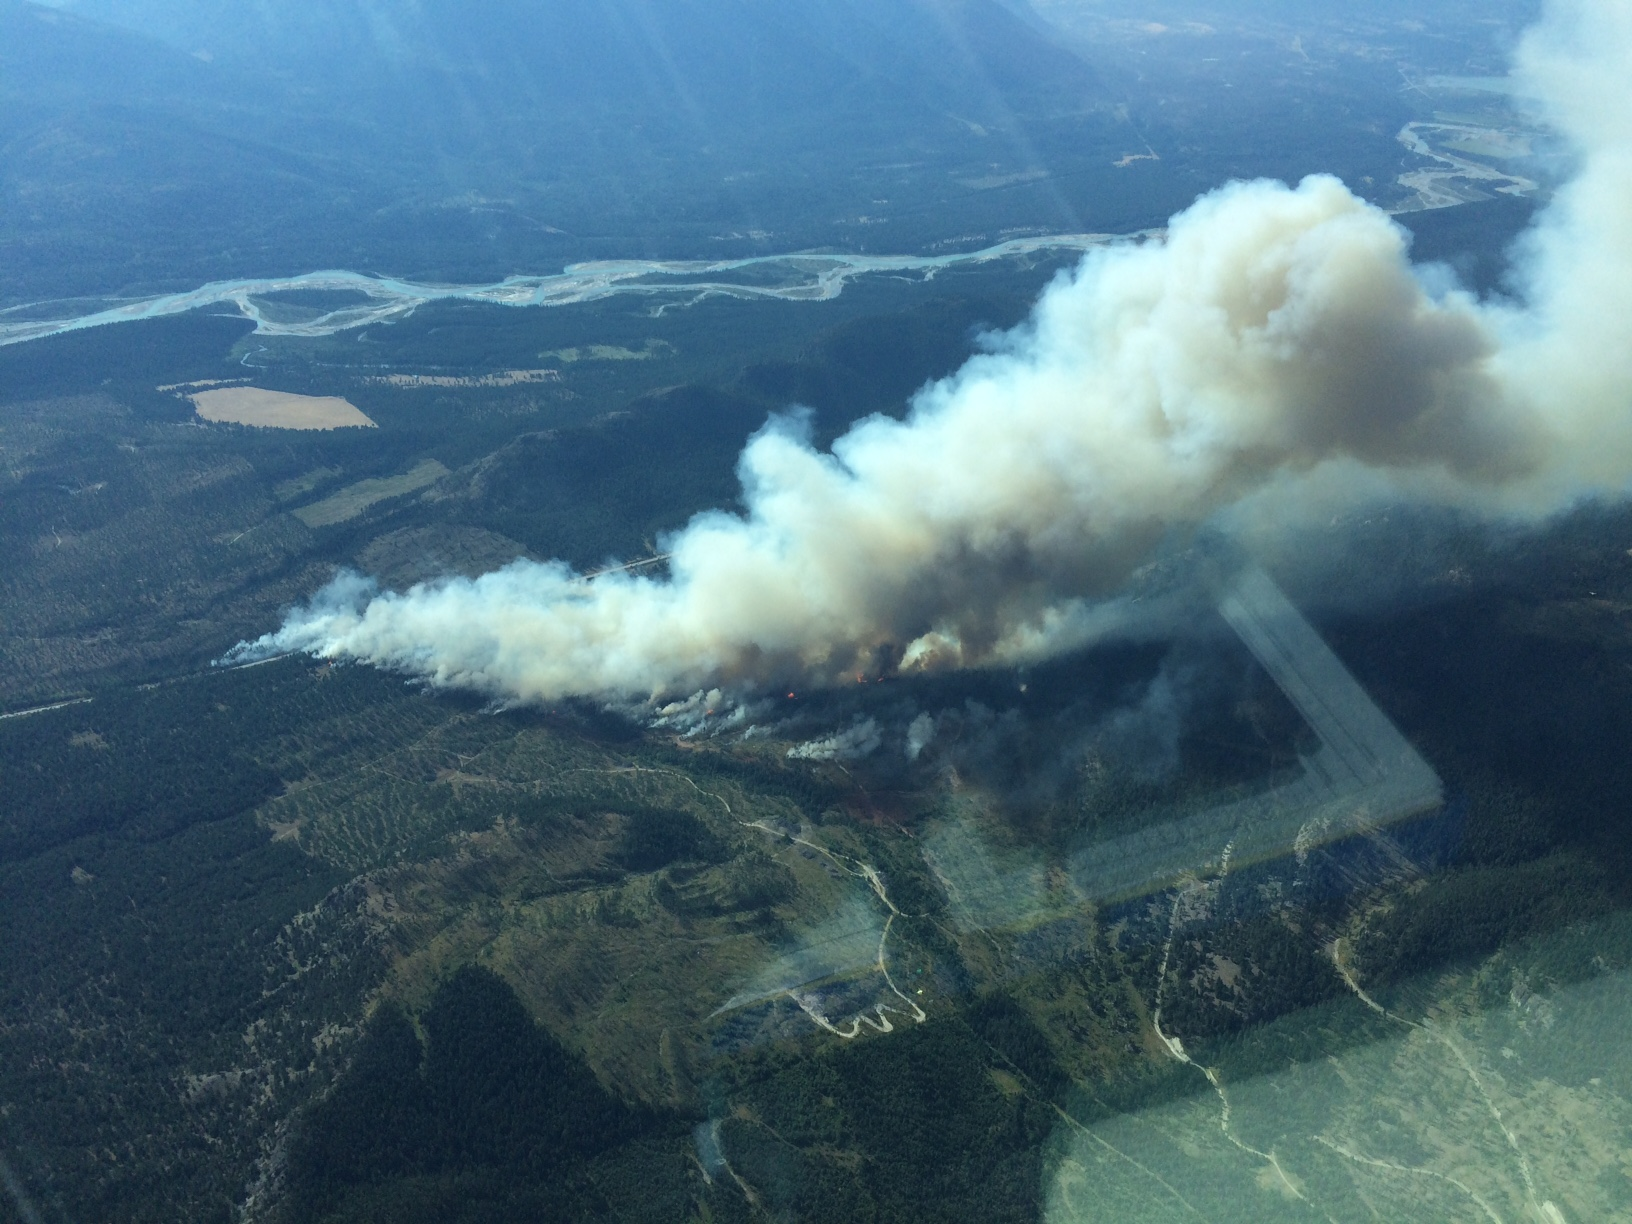 Island Pond wildfire 25% contained